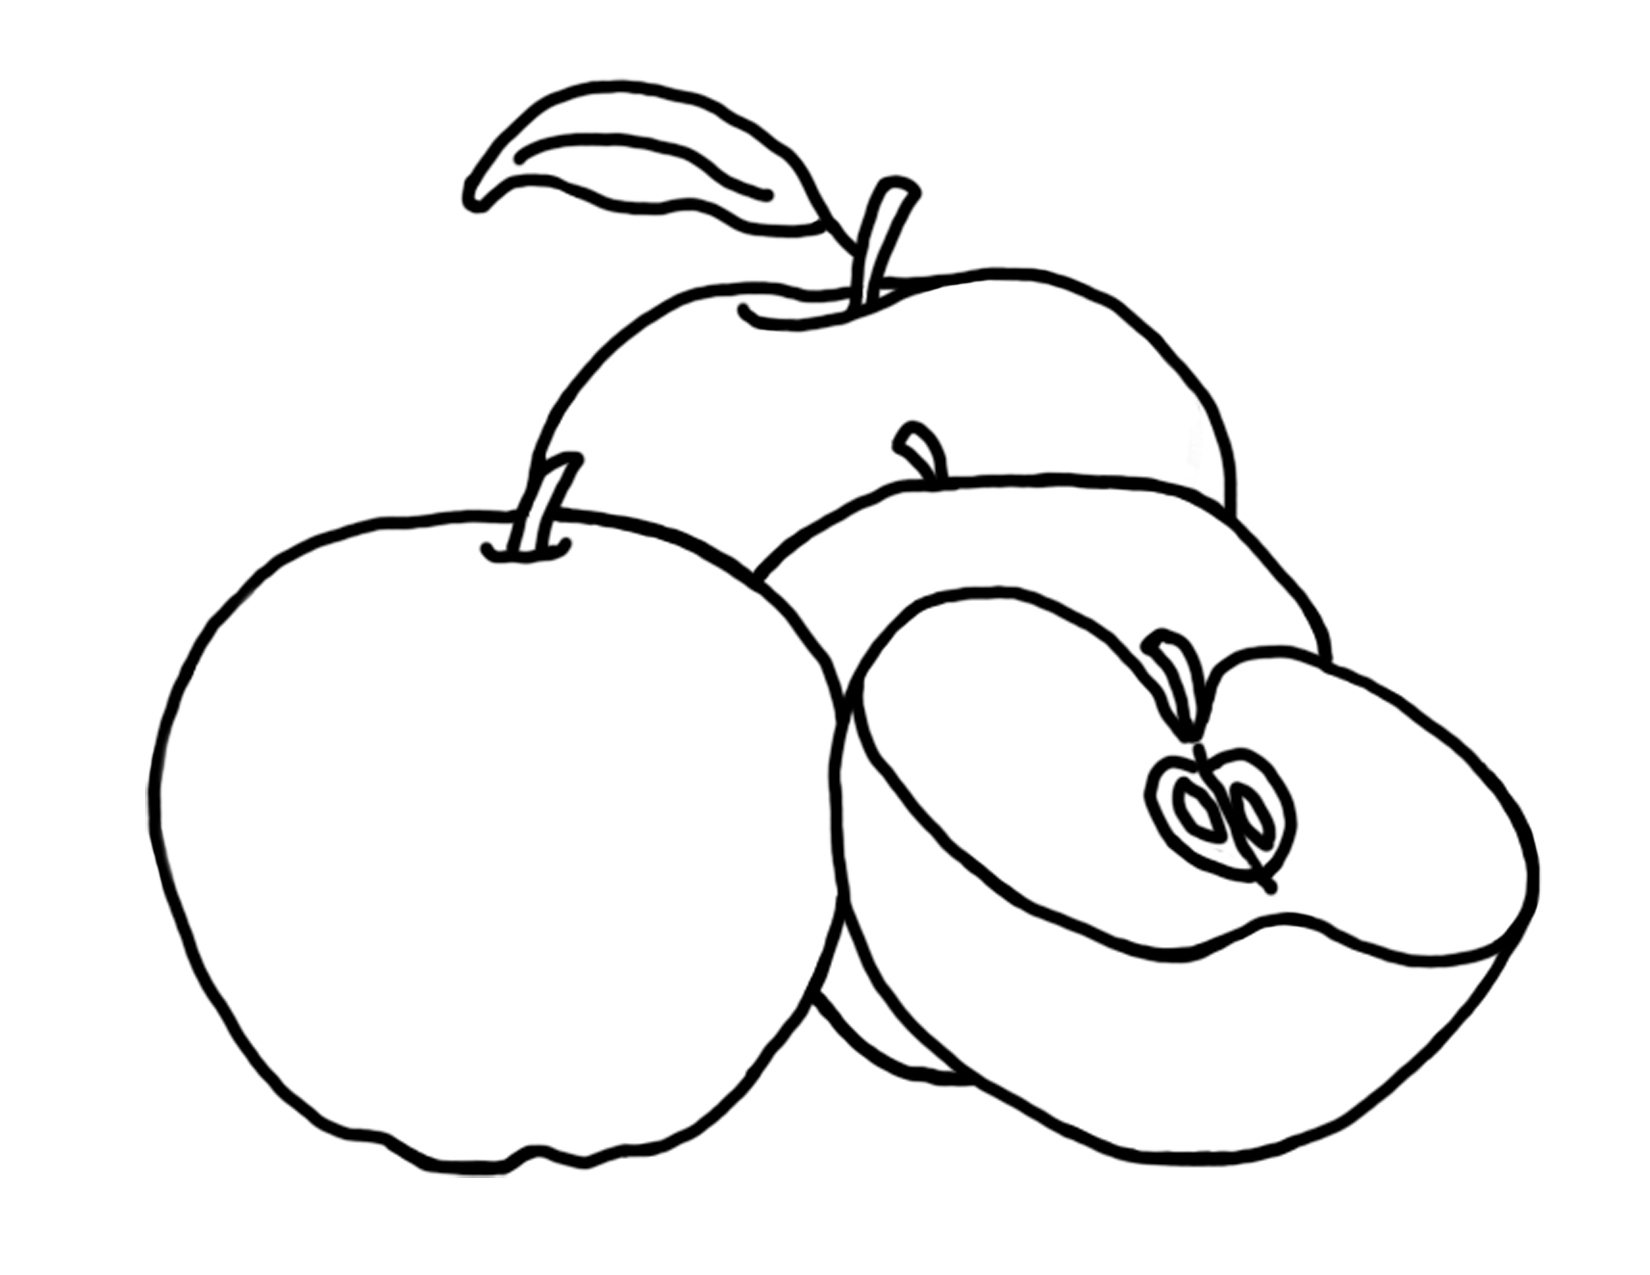 coloring pages apple top 30 apple coloring pages for your little ones coloring pages apple